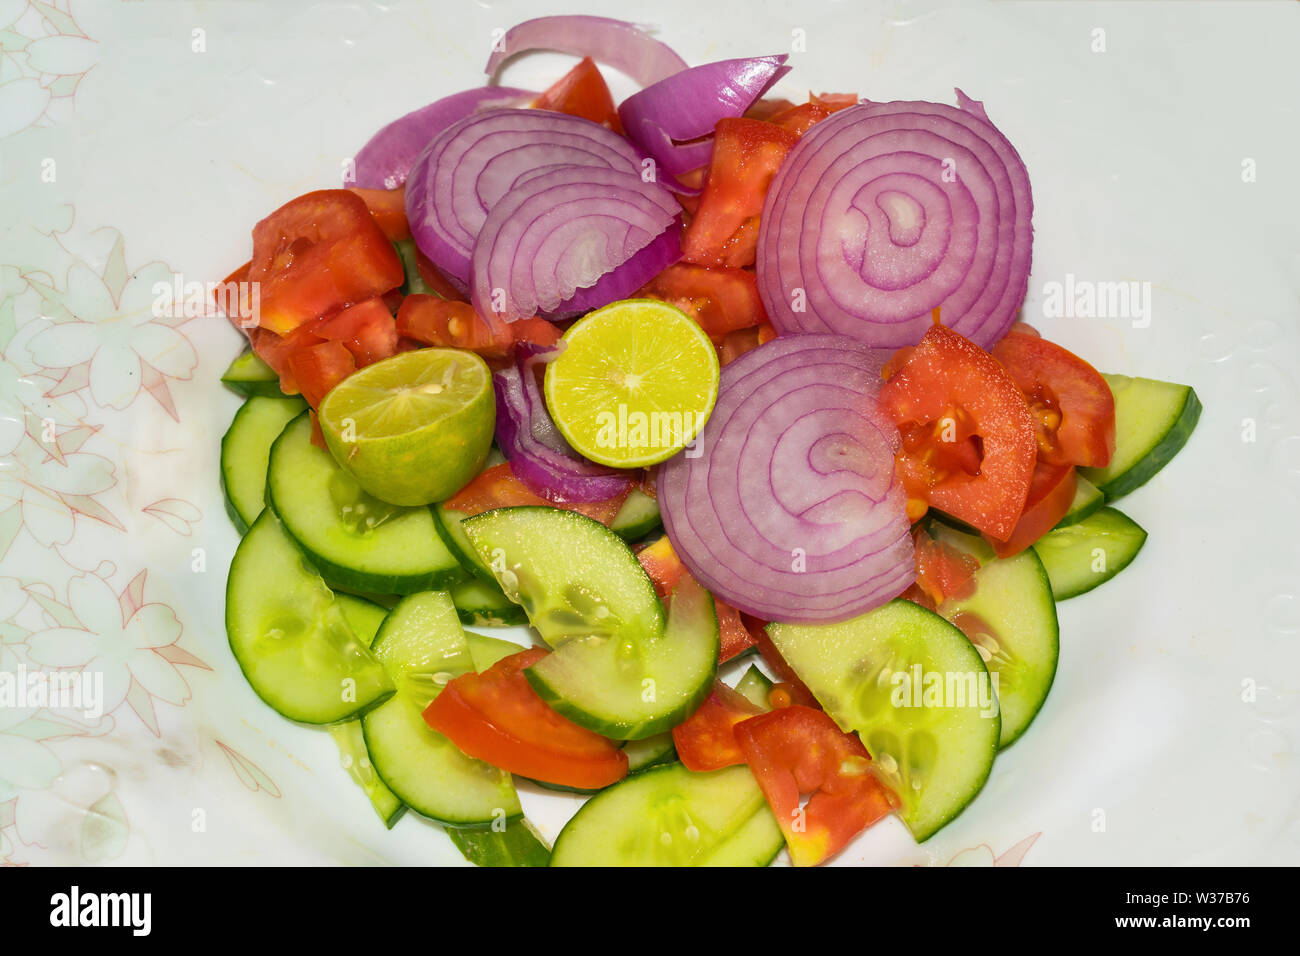 close  up of vegetable salad mixed vegetables isolated on a white background. Stock Photo